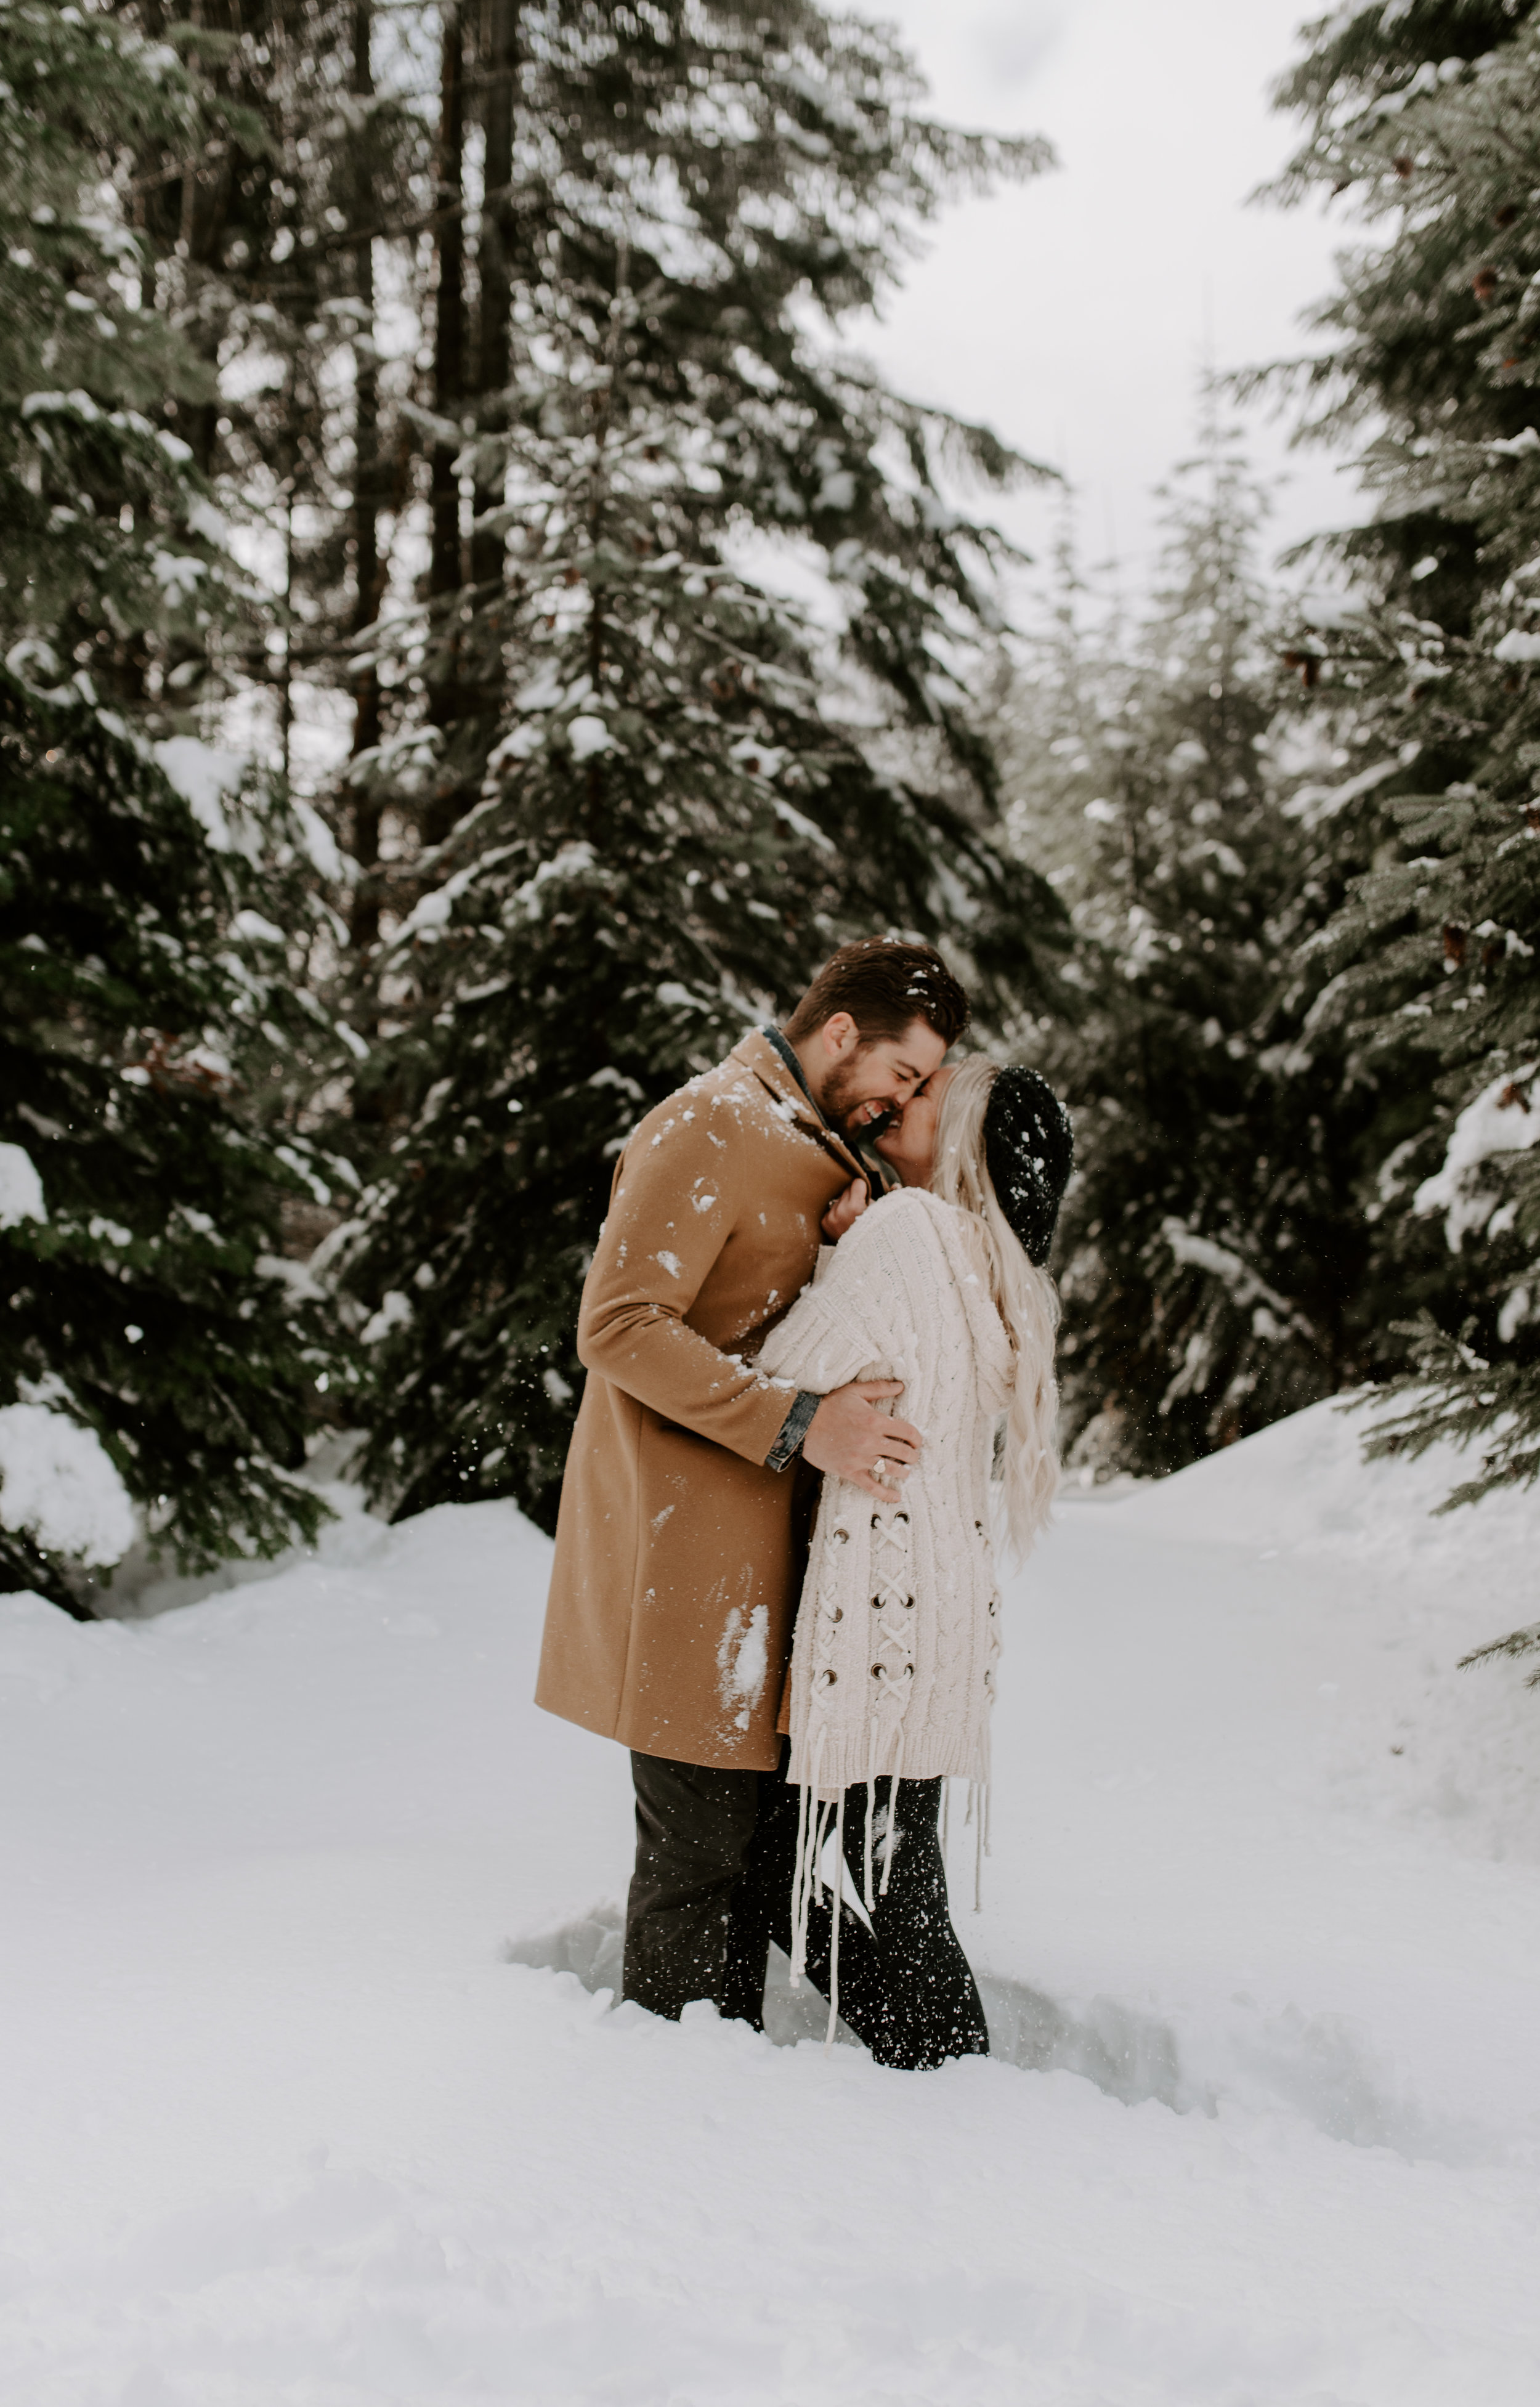 Washington elopement photographer for adventurous couples. Winter session in North Cascades National Park.